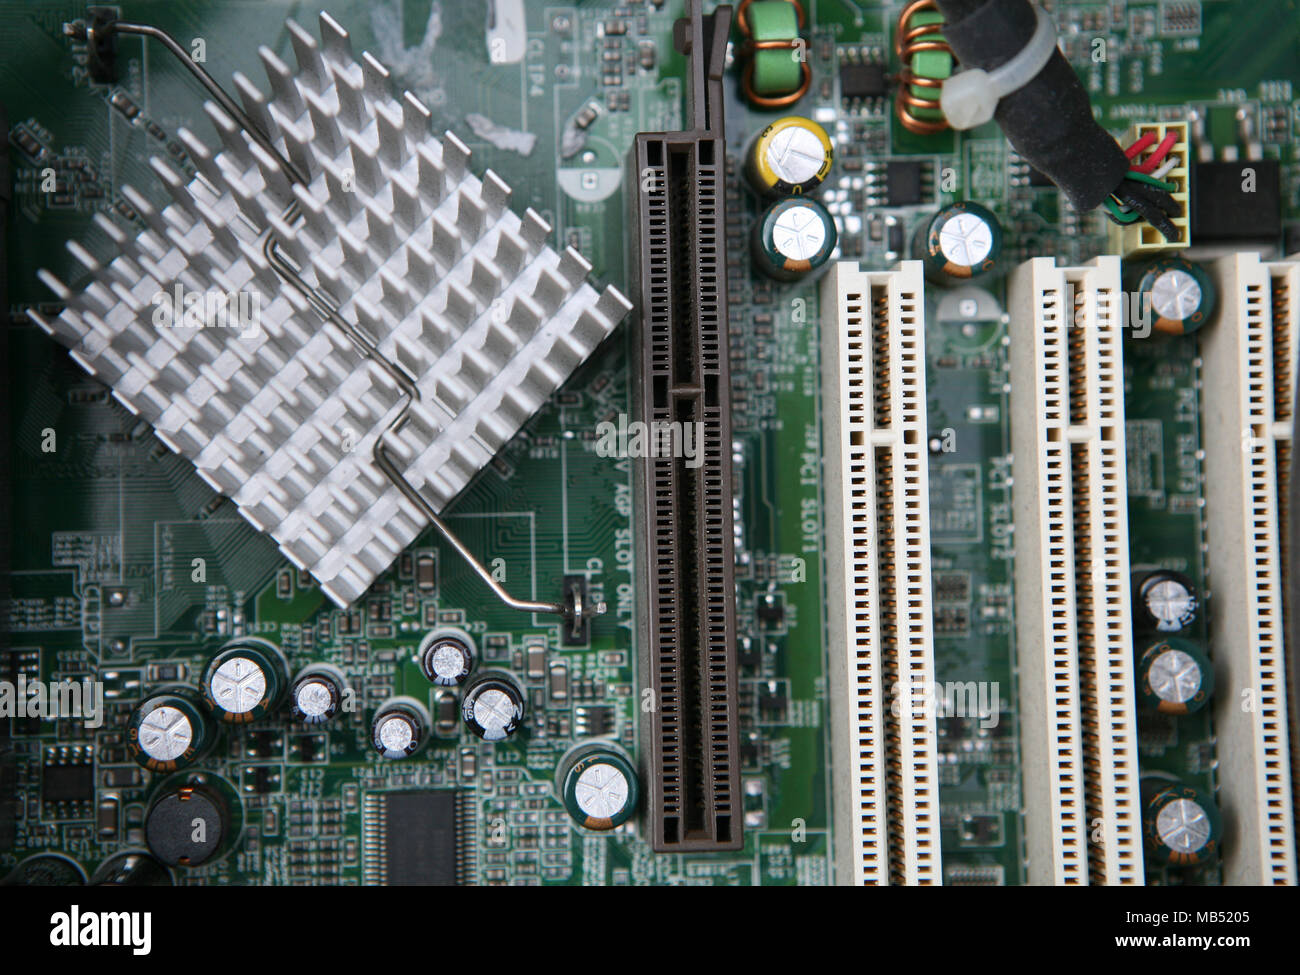 PCI-E slots on the PC motherboard - Stock Image